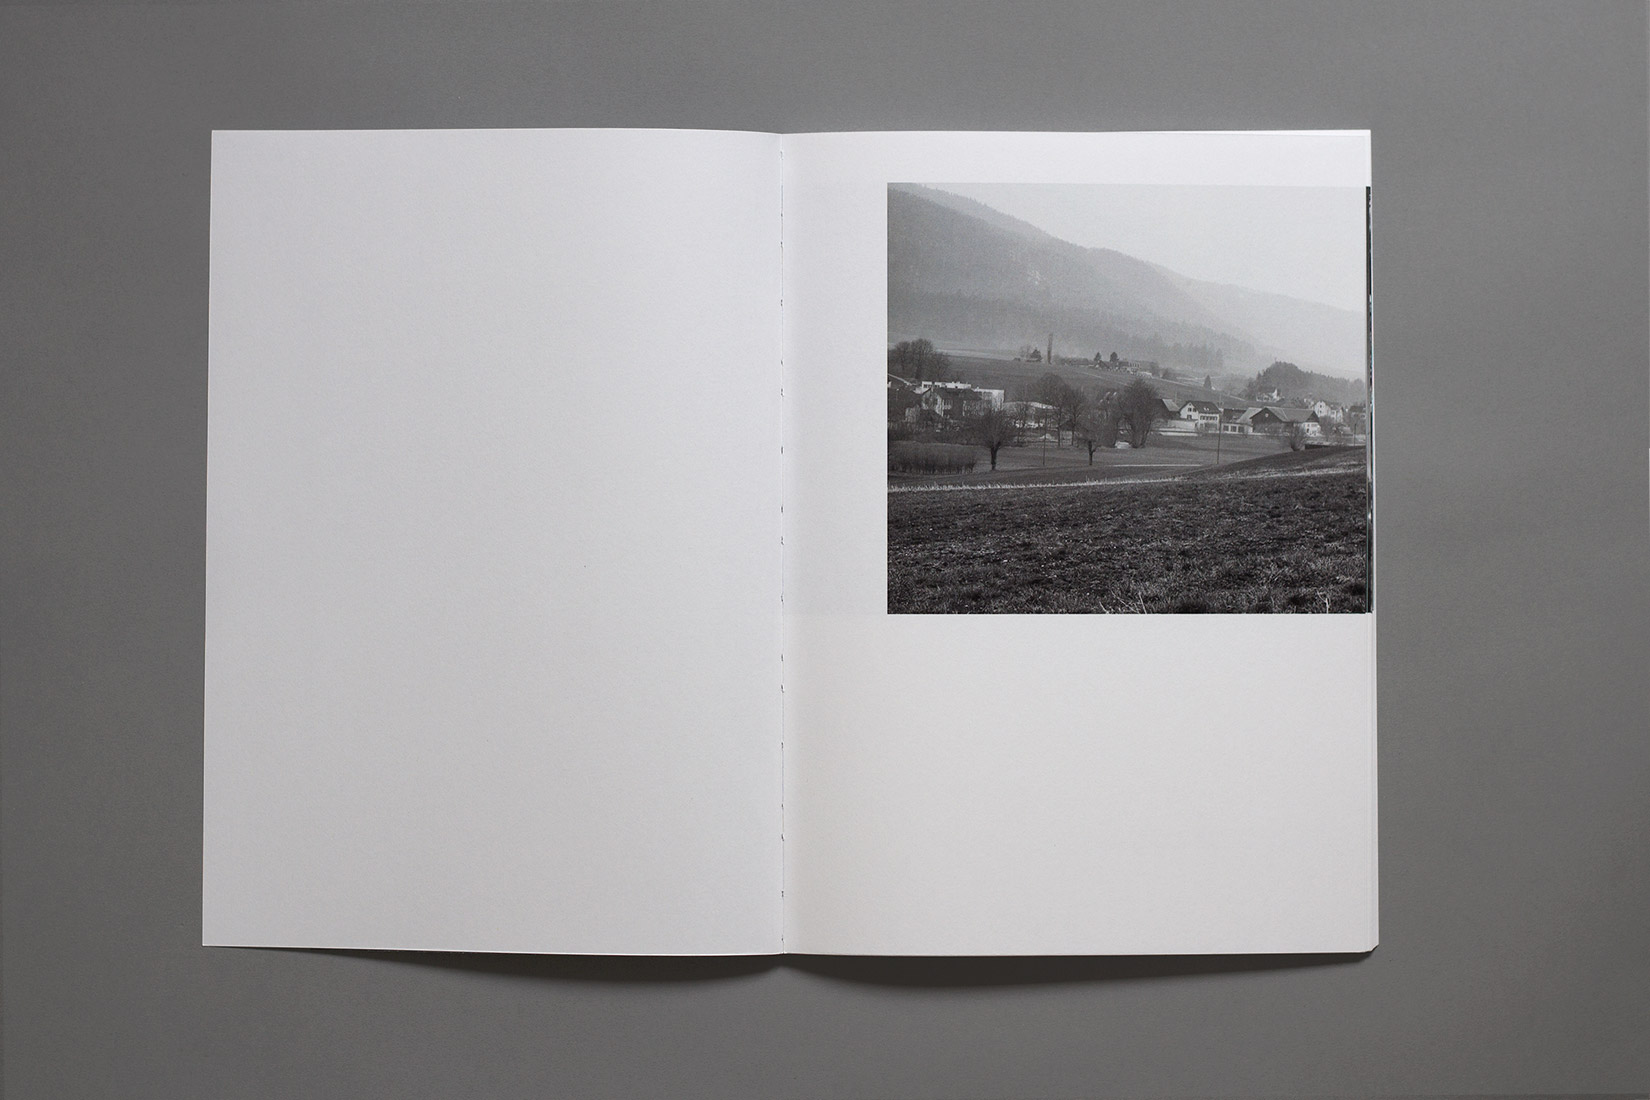 Courtelary, field, countryside, black and white, book, photography